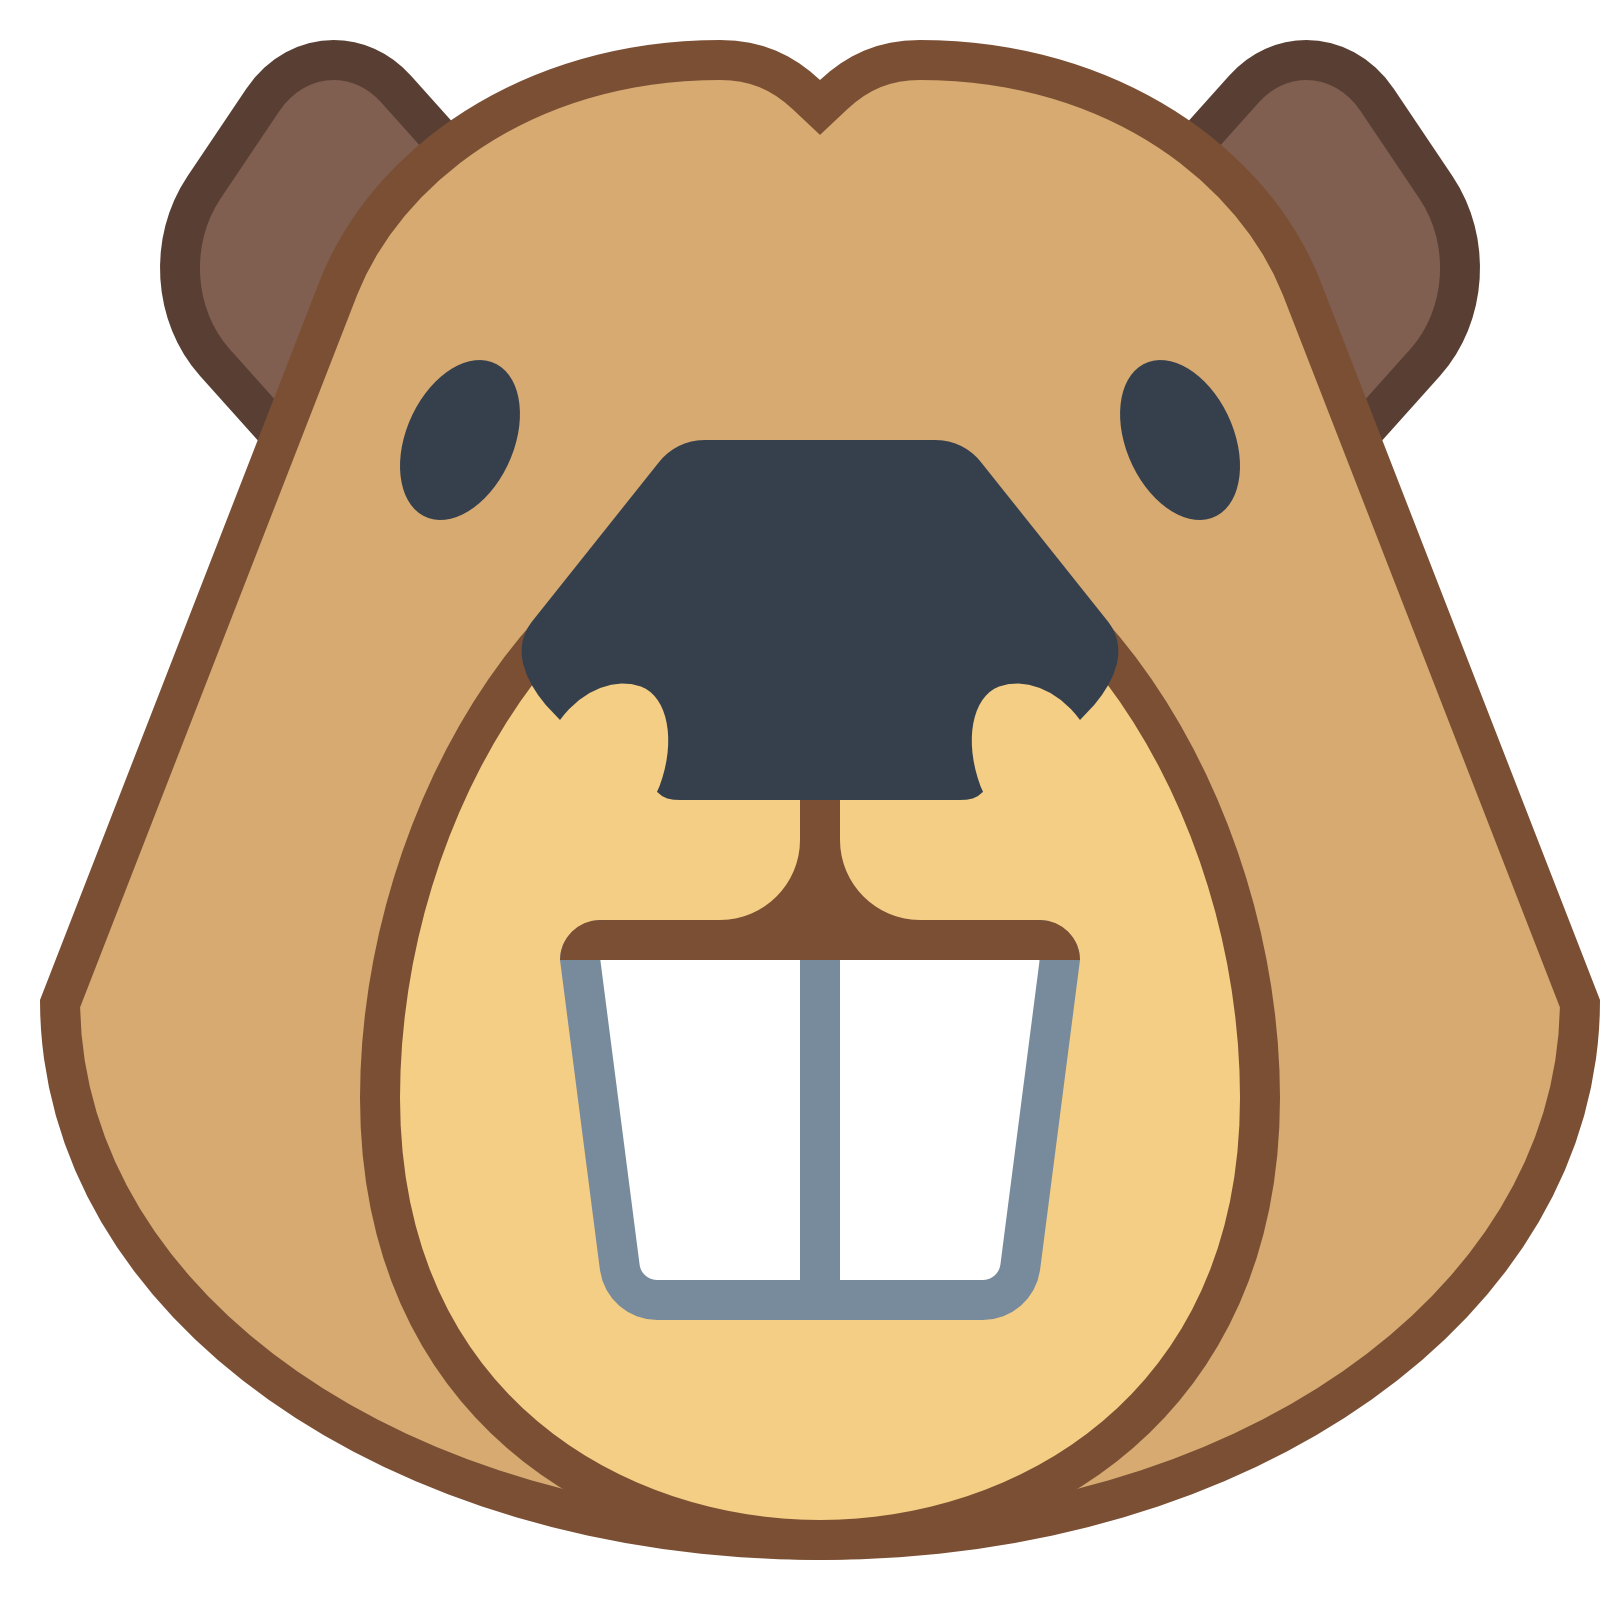 Face clipart beaver. Icon web icons png